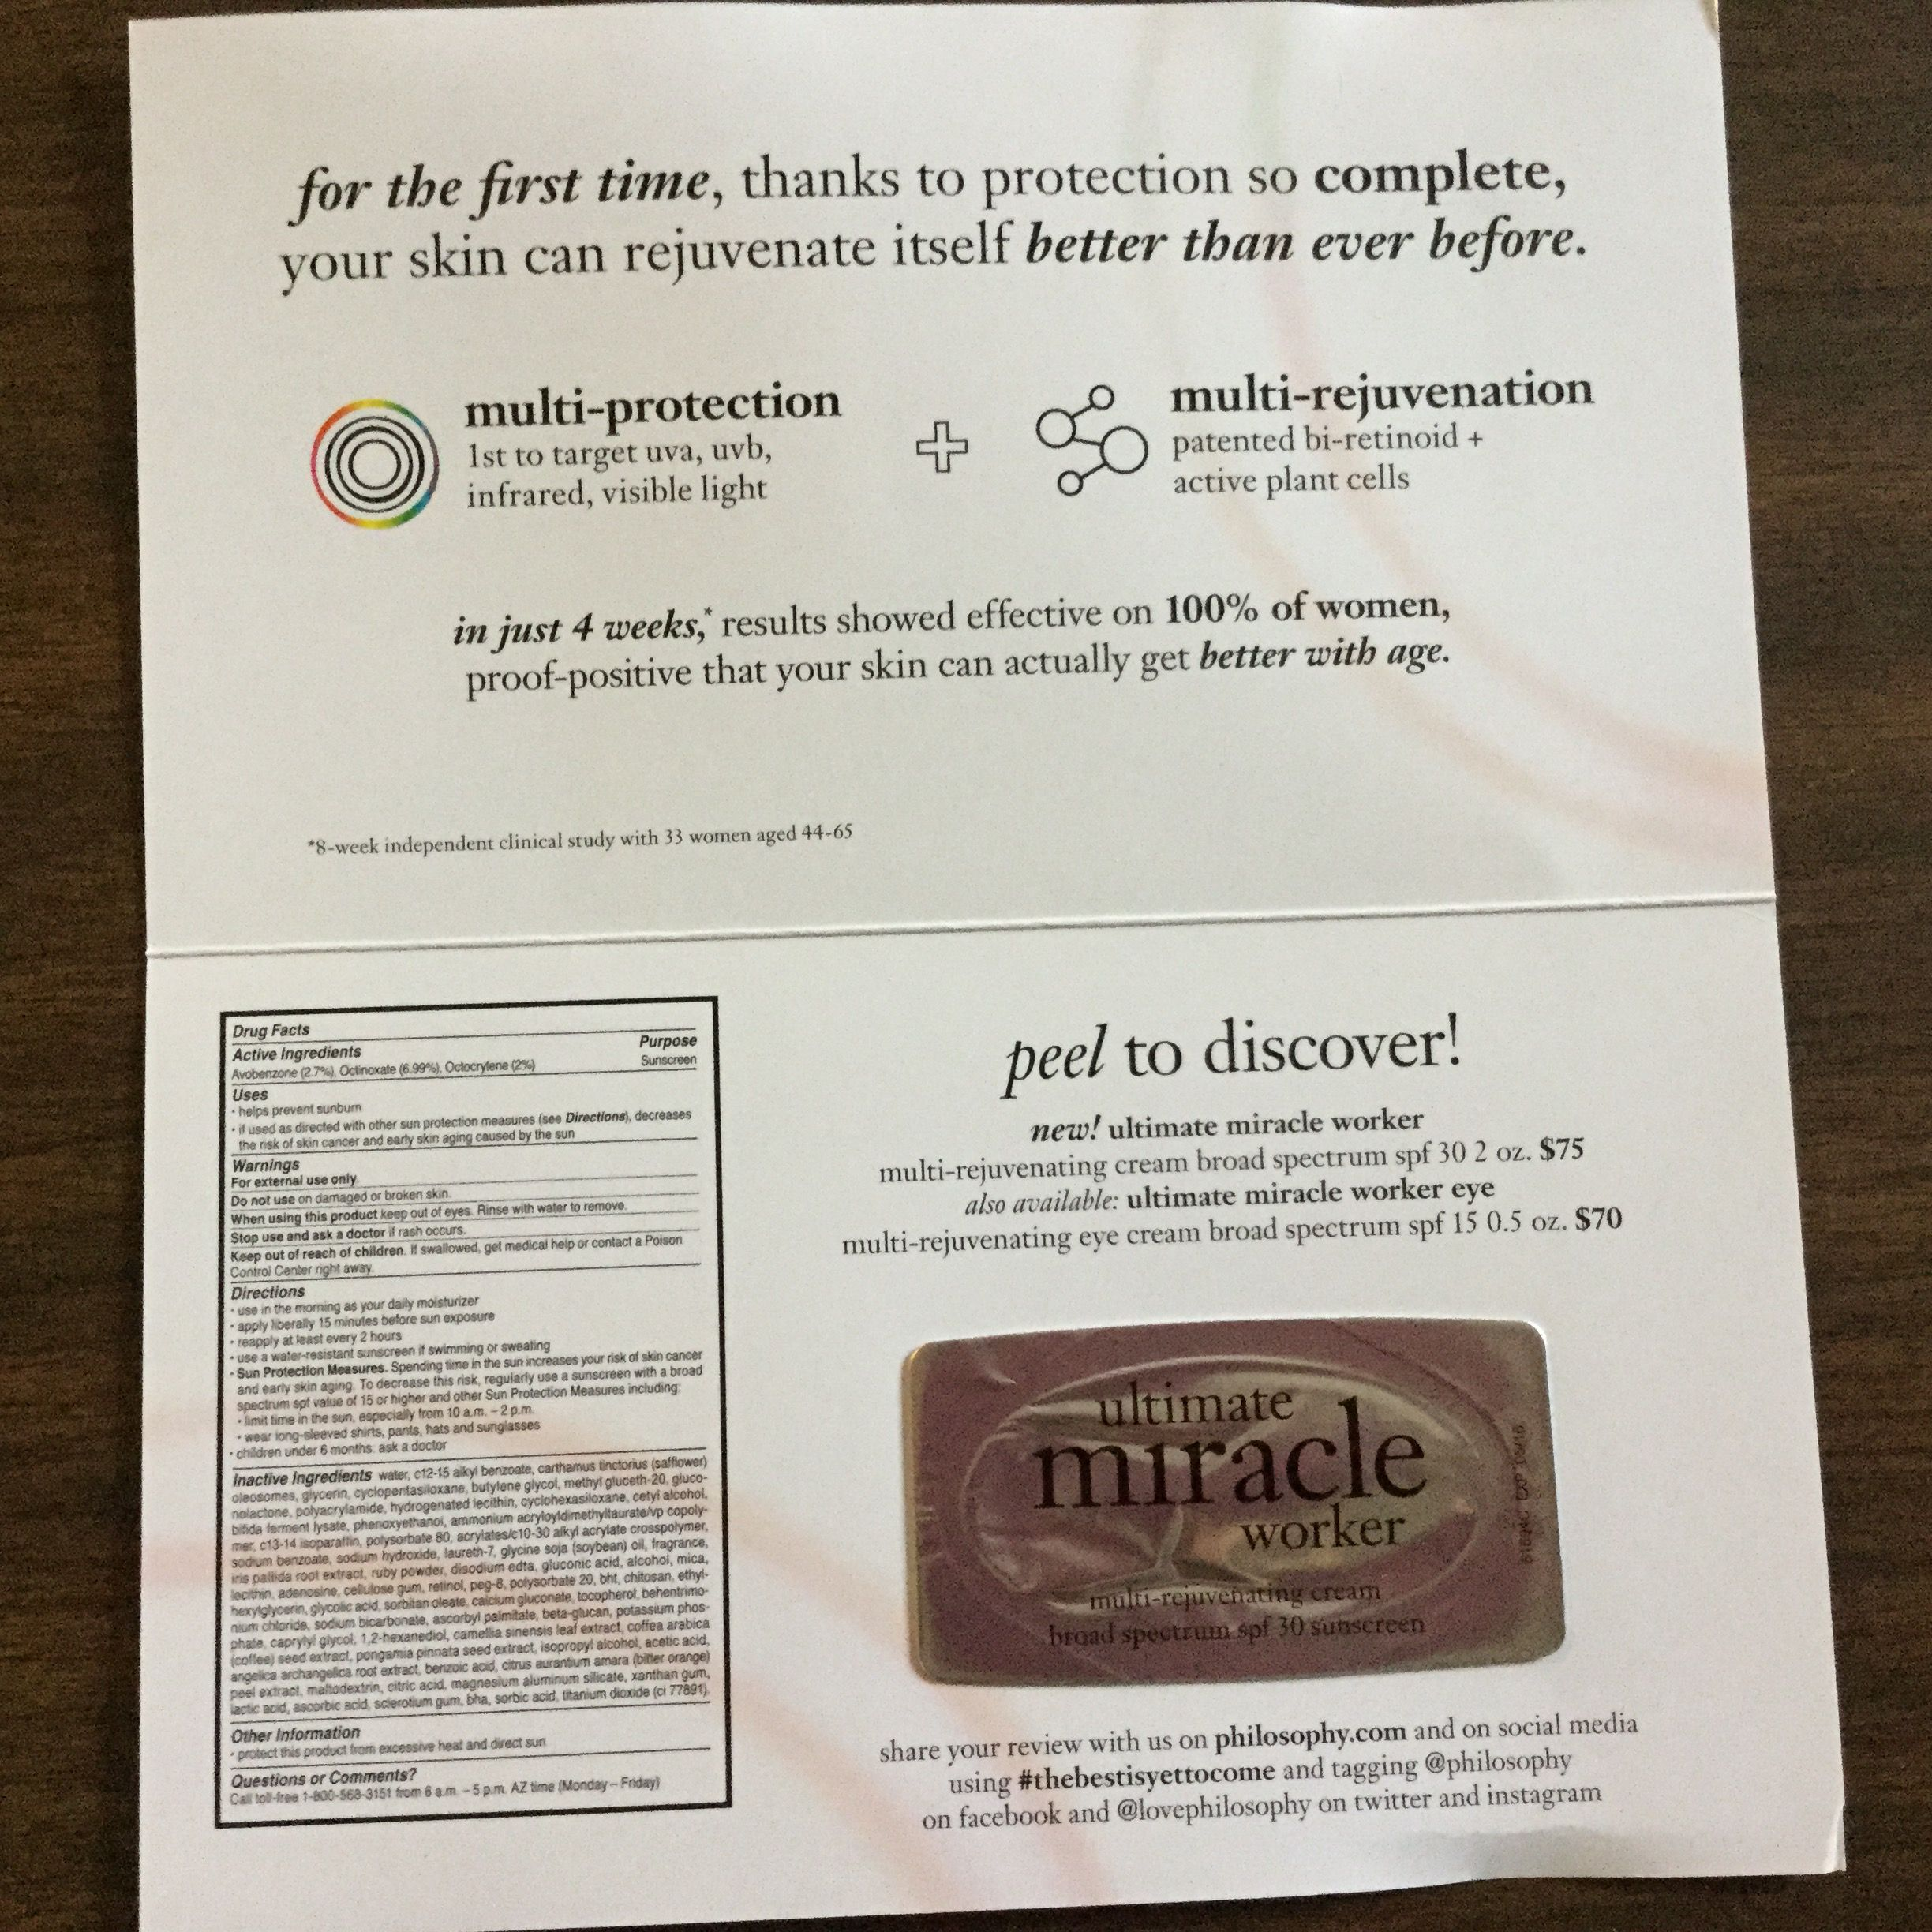 Free Ultimate Miracle Worker Multi Rejuvenating Cream From Philosophy Philosophy Visible Light Worker